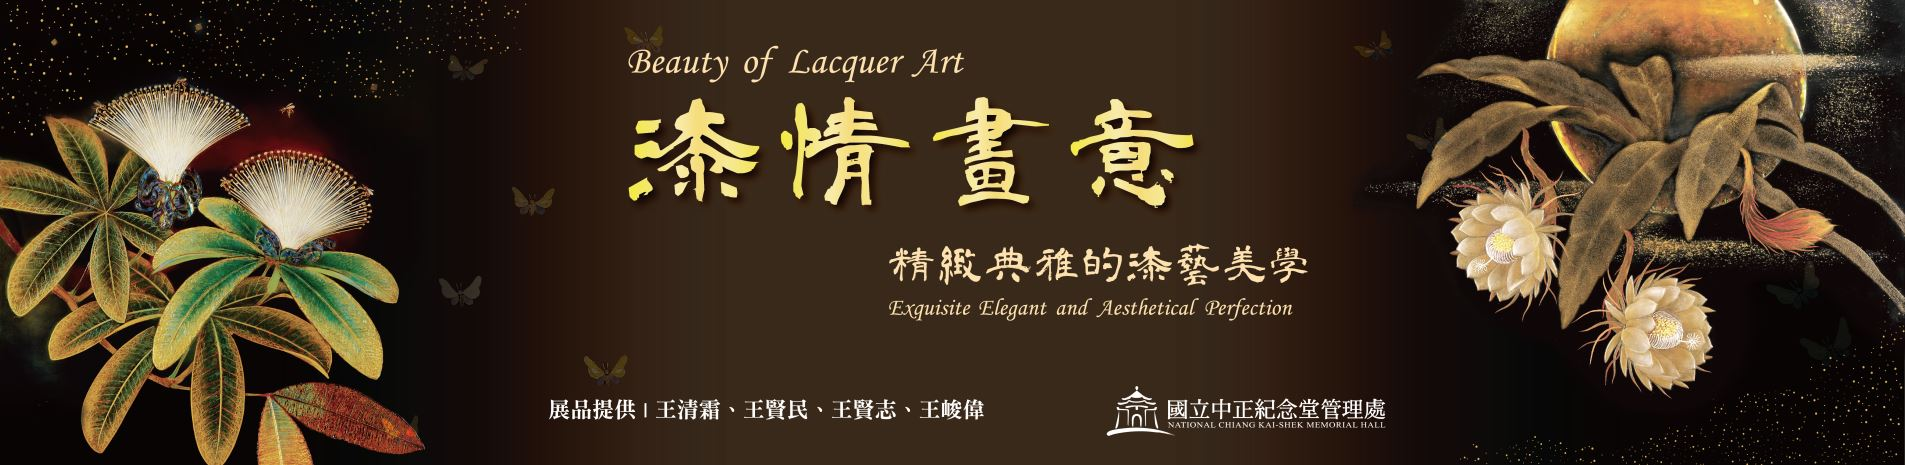 'Beauty of Lacquer Art — Exquisite, Elegant and Aesthetical Perfection'